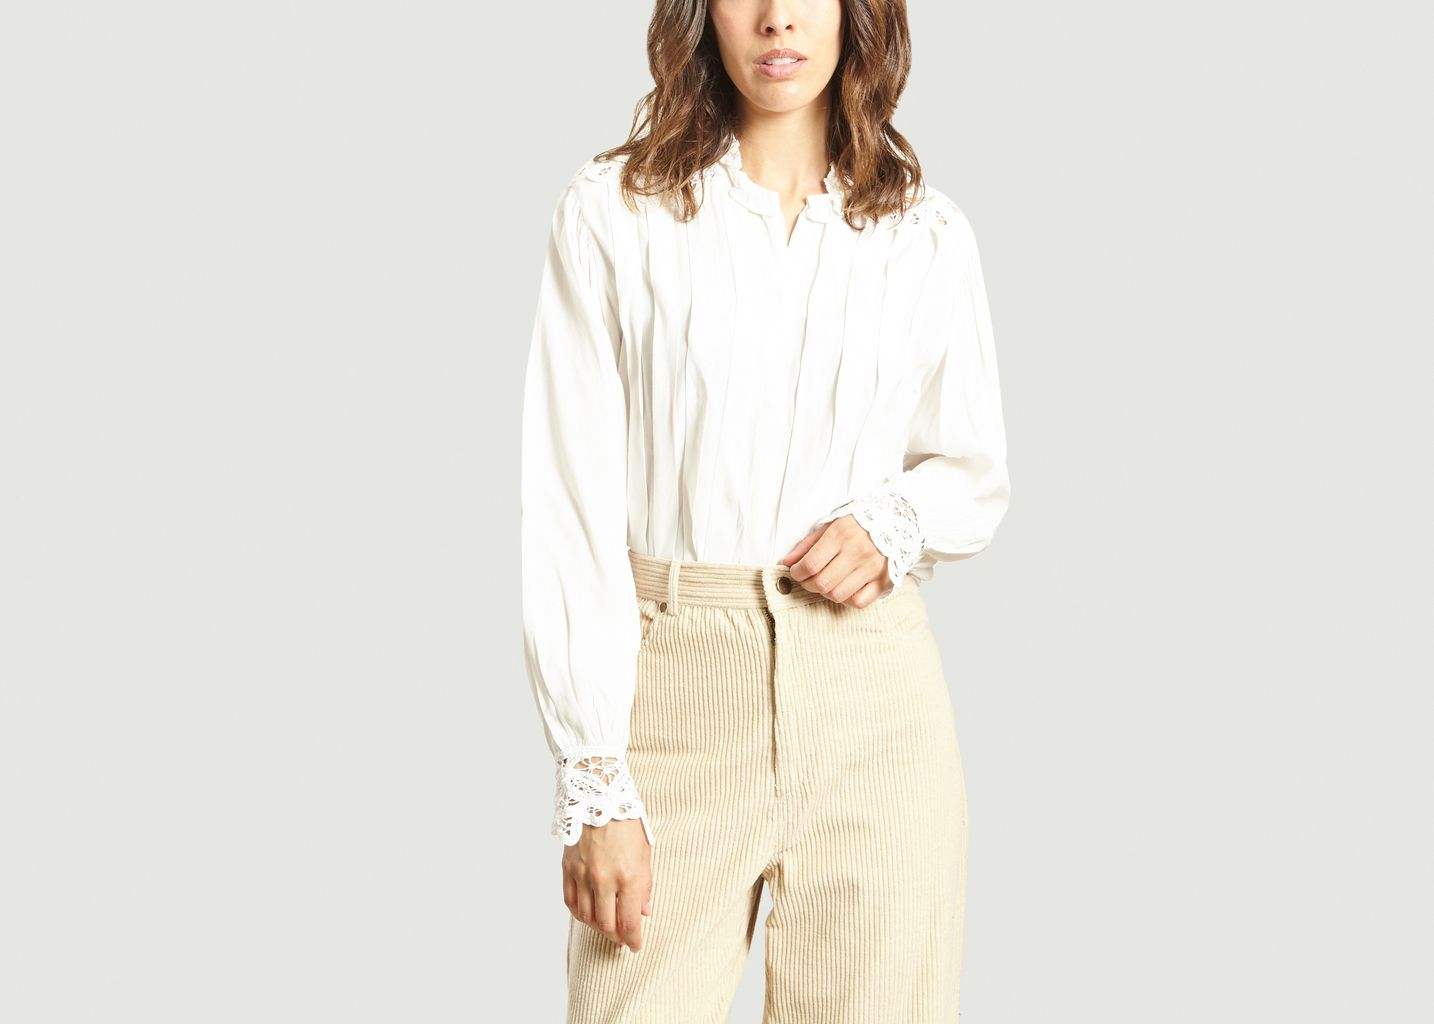 Blouse Timote - Swildens